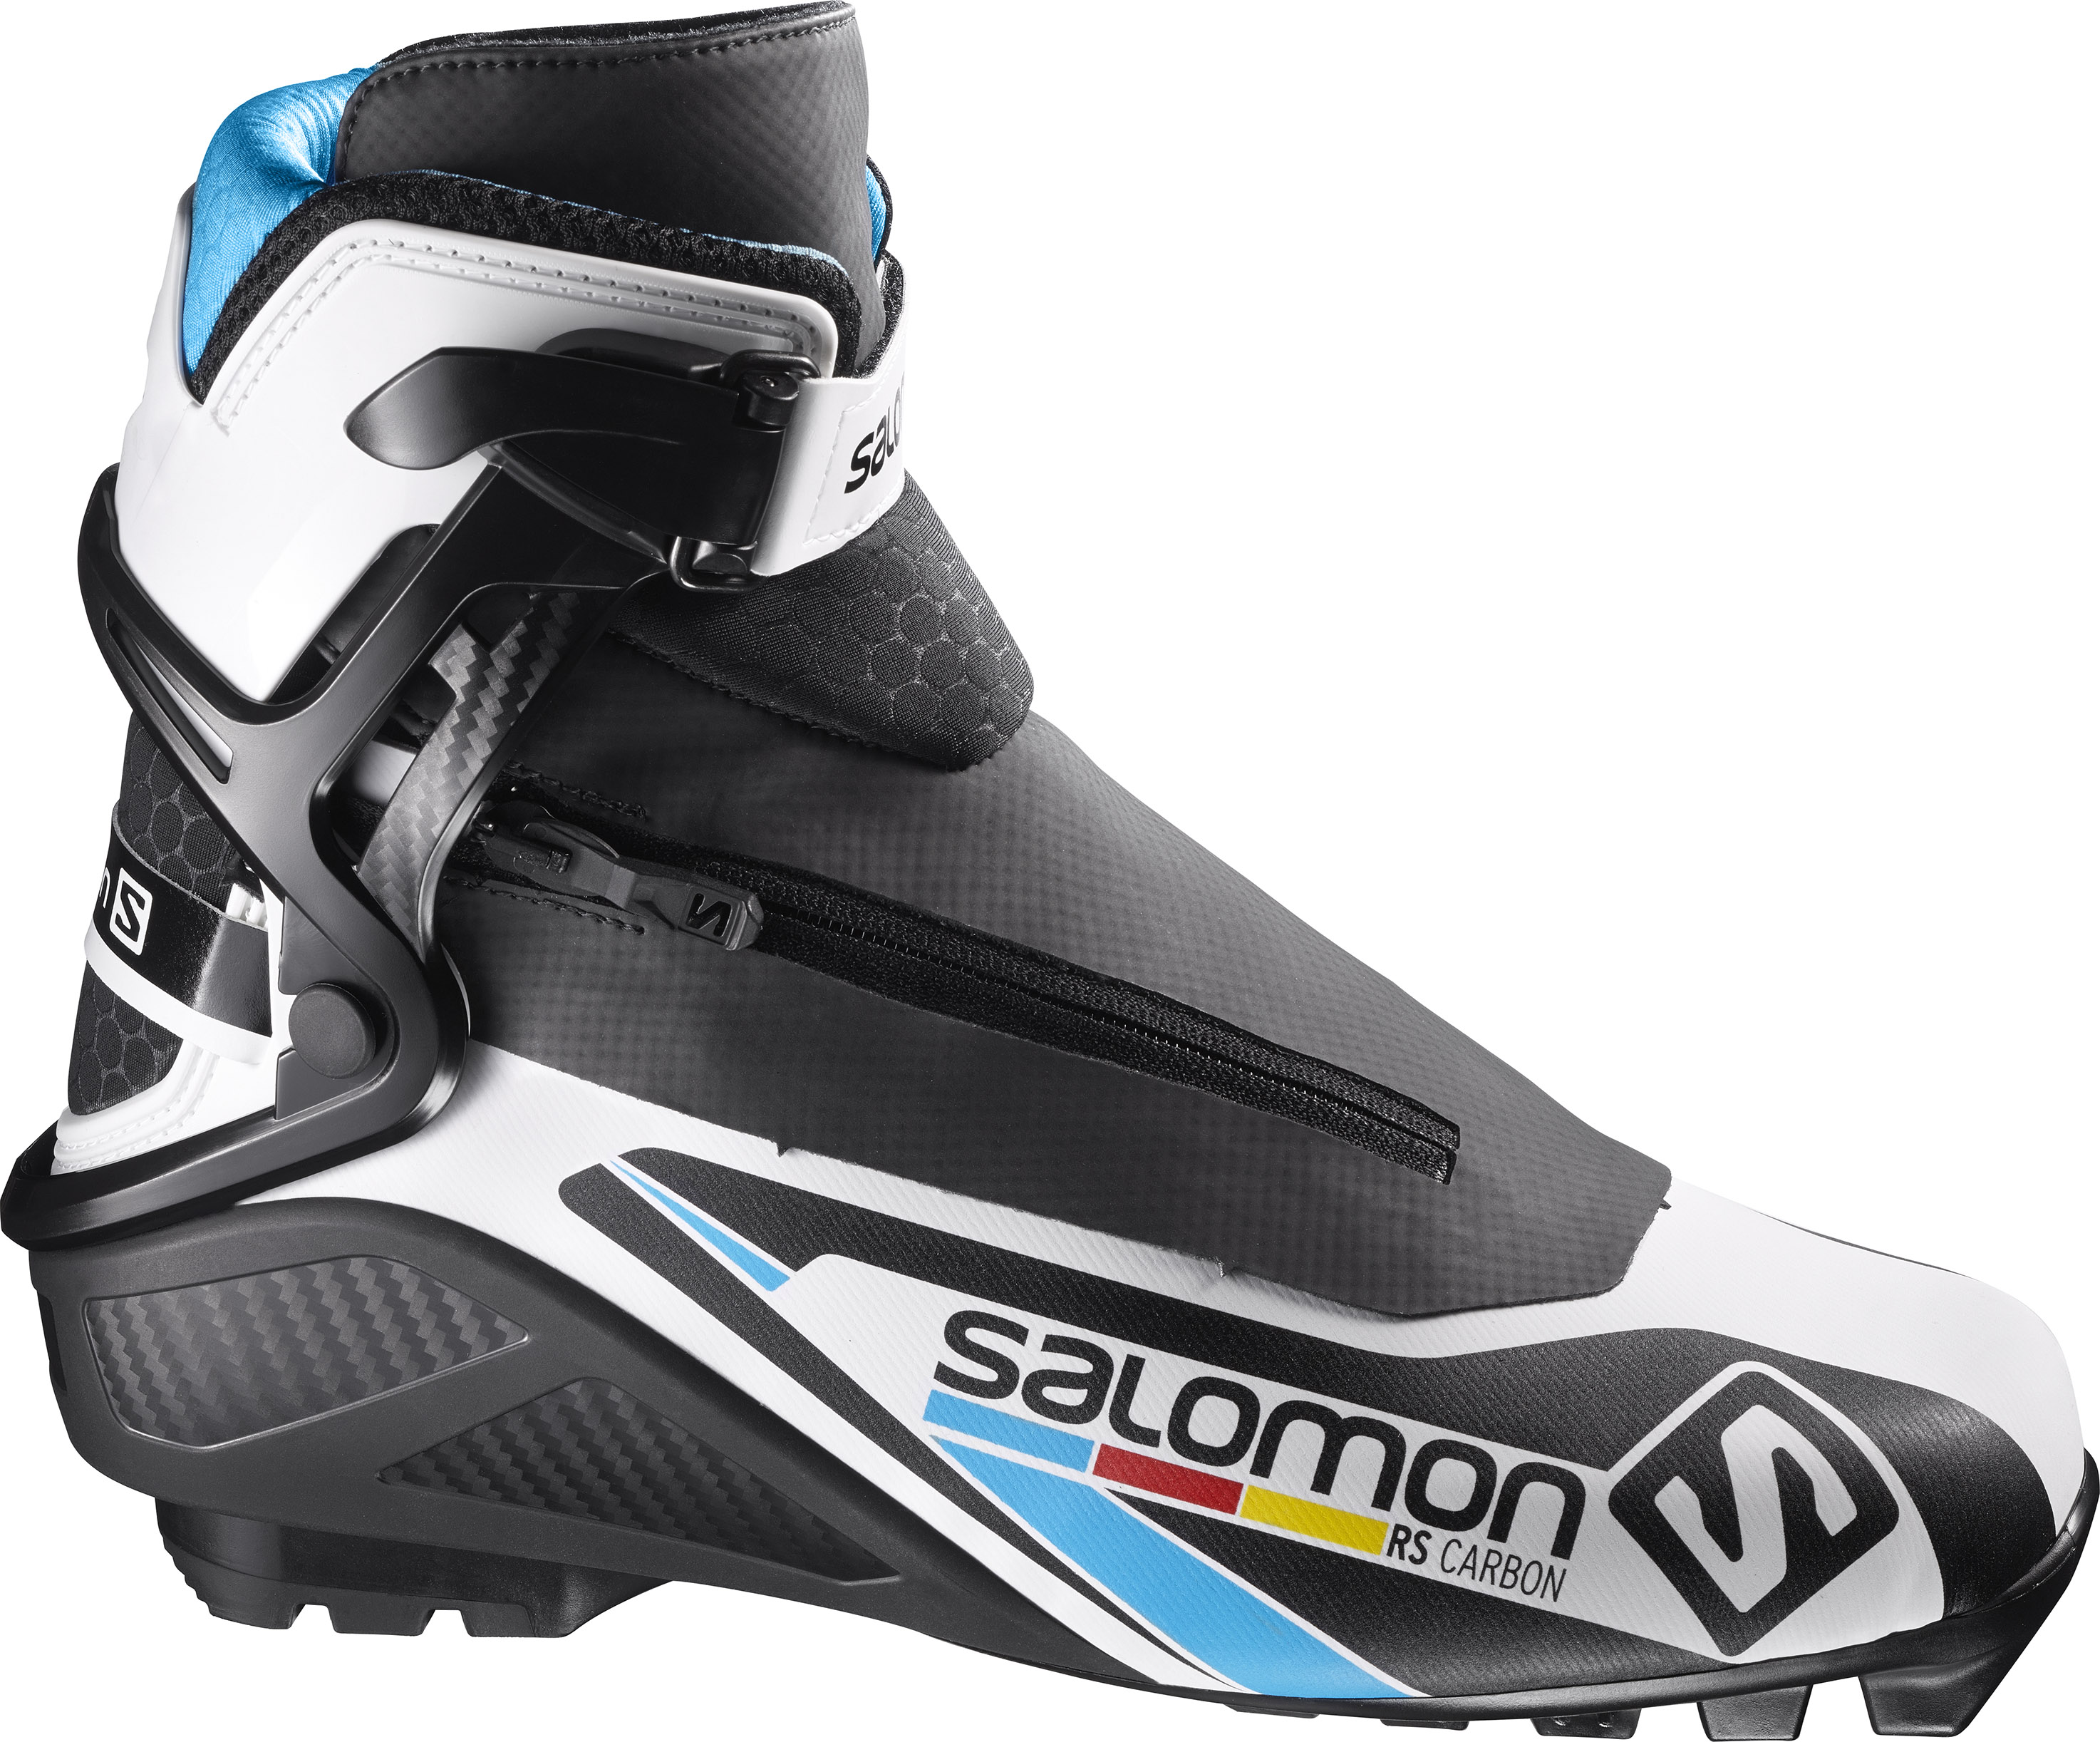 SALOMON RS CARBON PILOT 17/18